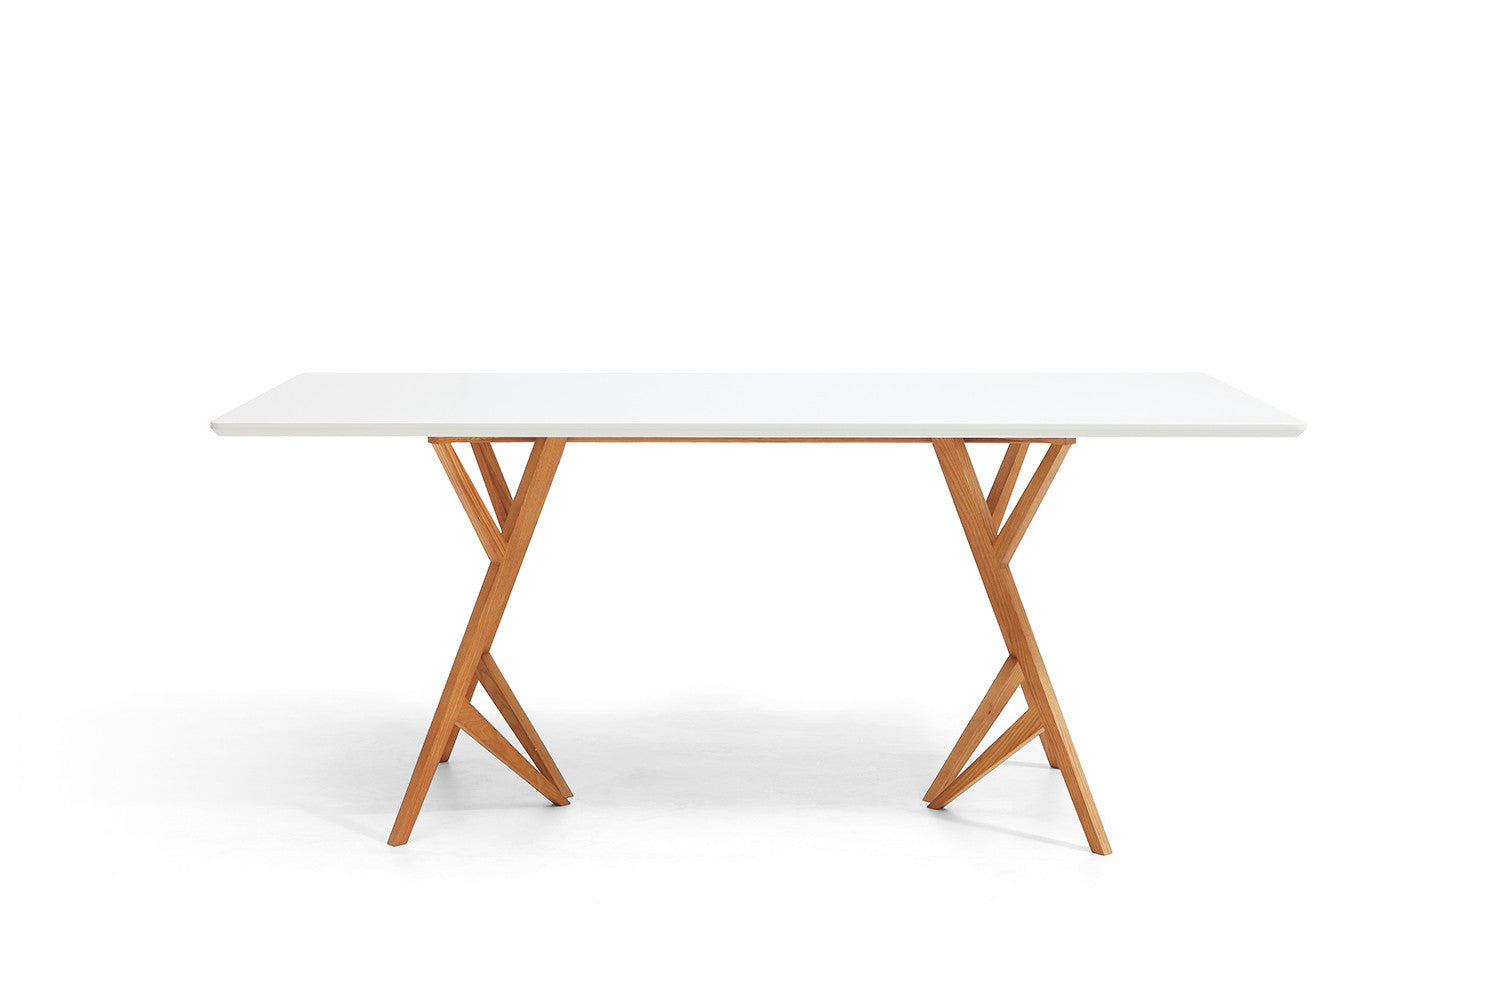 table de salle manger design scandinave vispa dewarens On table salle a manger bois design